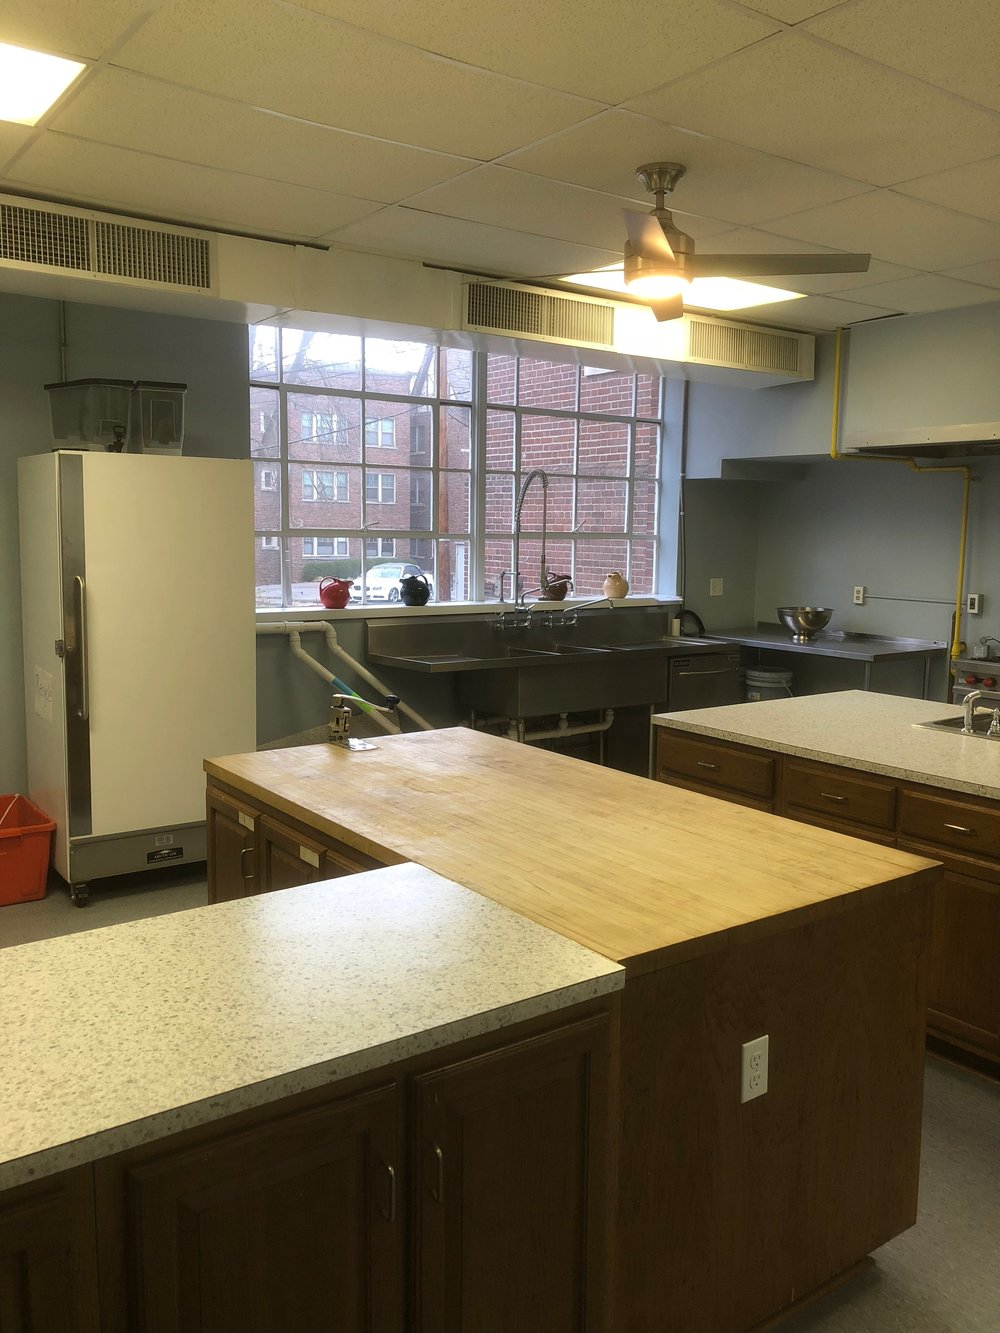 If Youu0027re Looking For Convenient Commercially Certified Kitchen Space To  Rent For Food Prep, Baking, Or Catering, We Have Space Available, ...